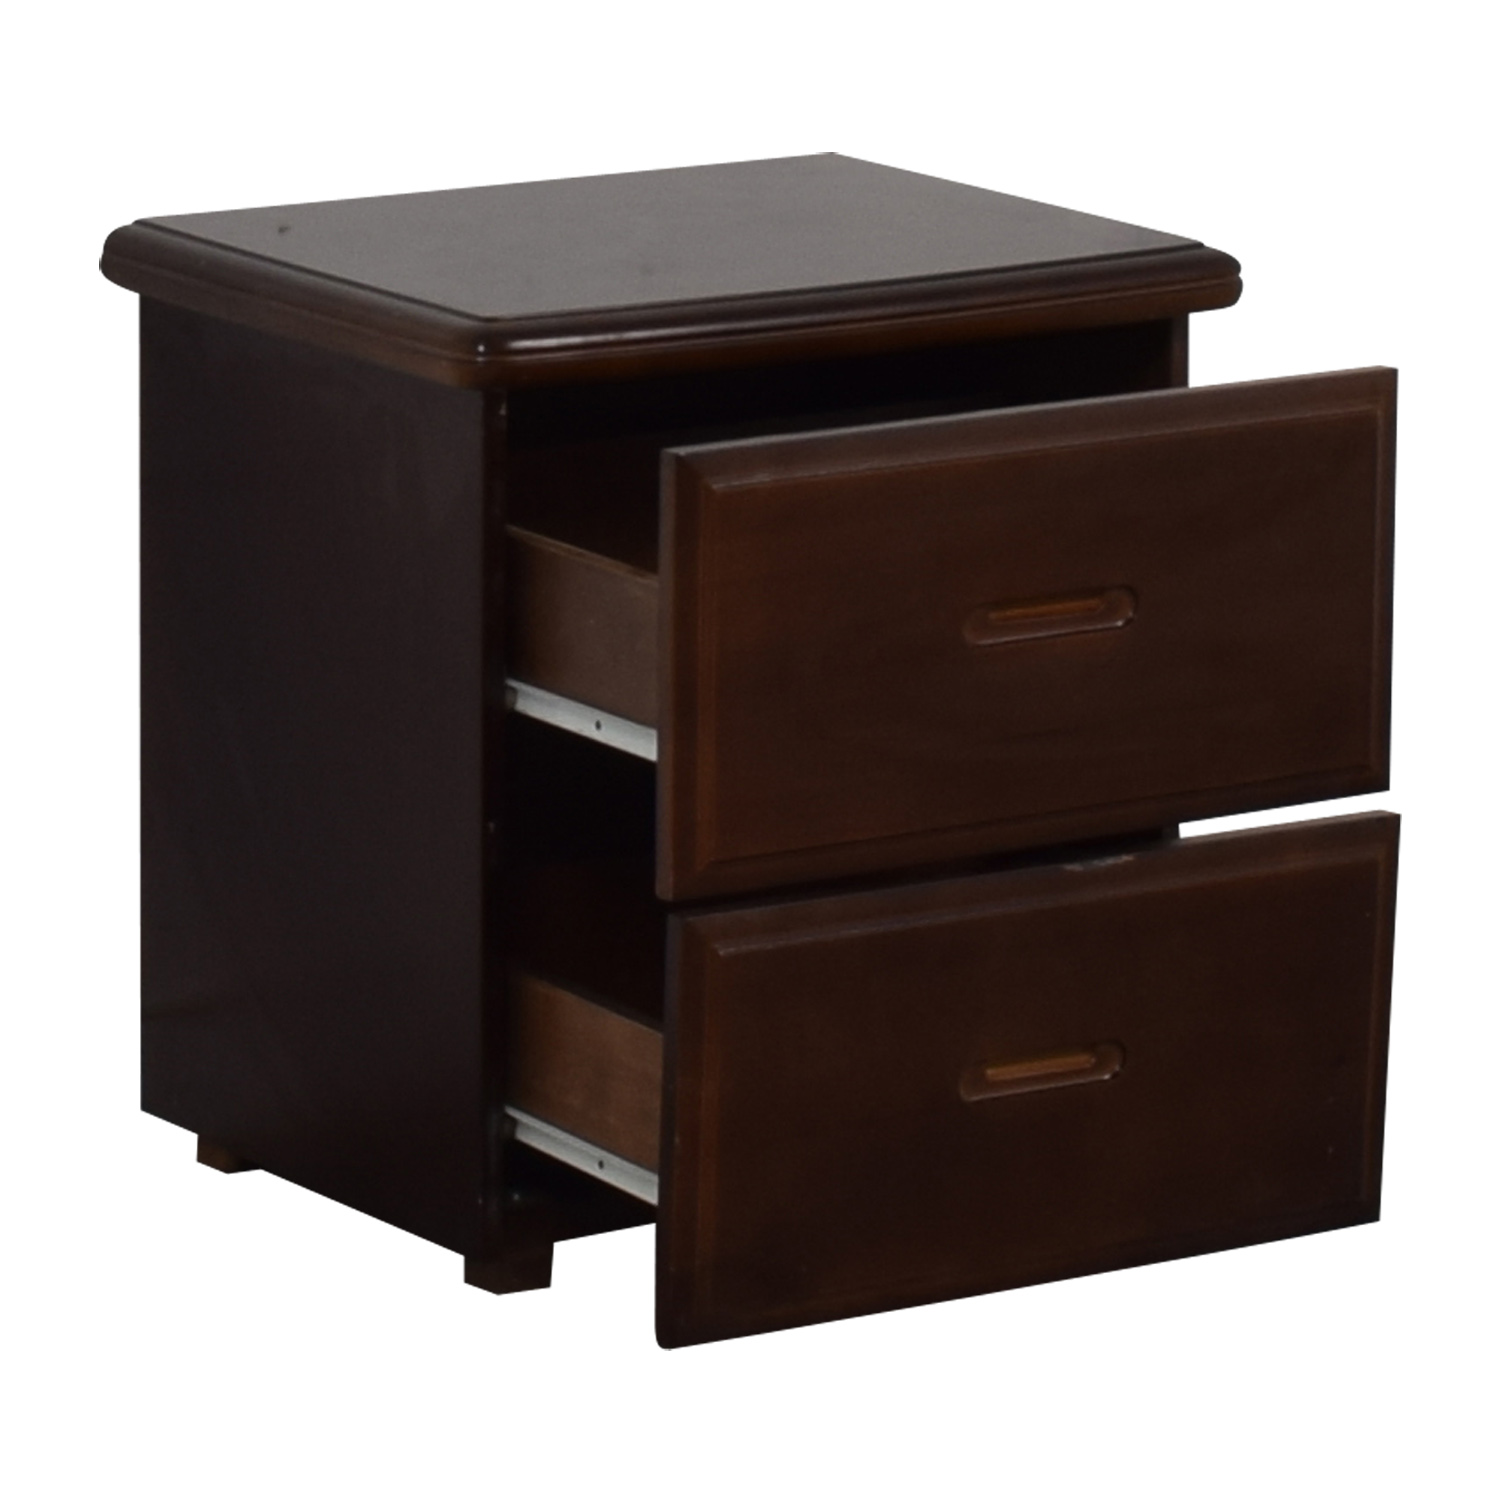 Wood Two-Drawer End Table sale